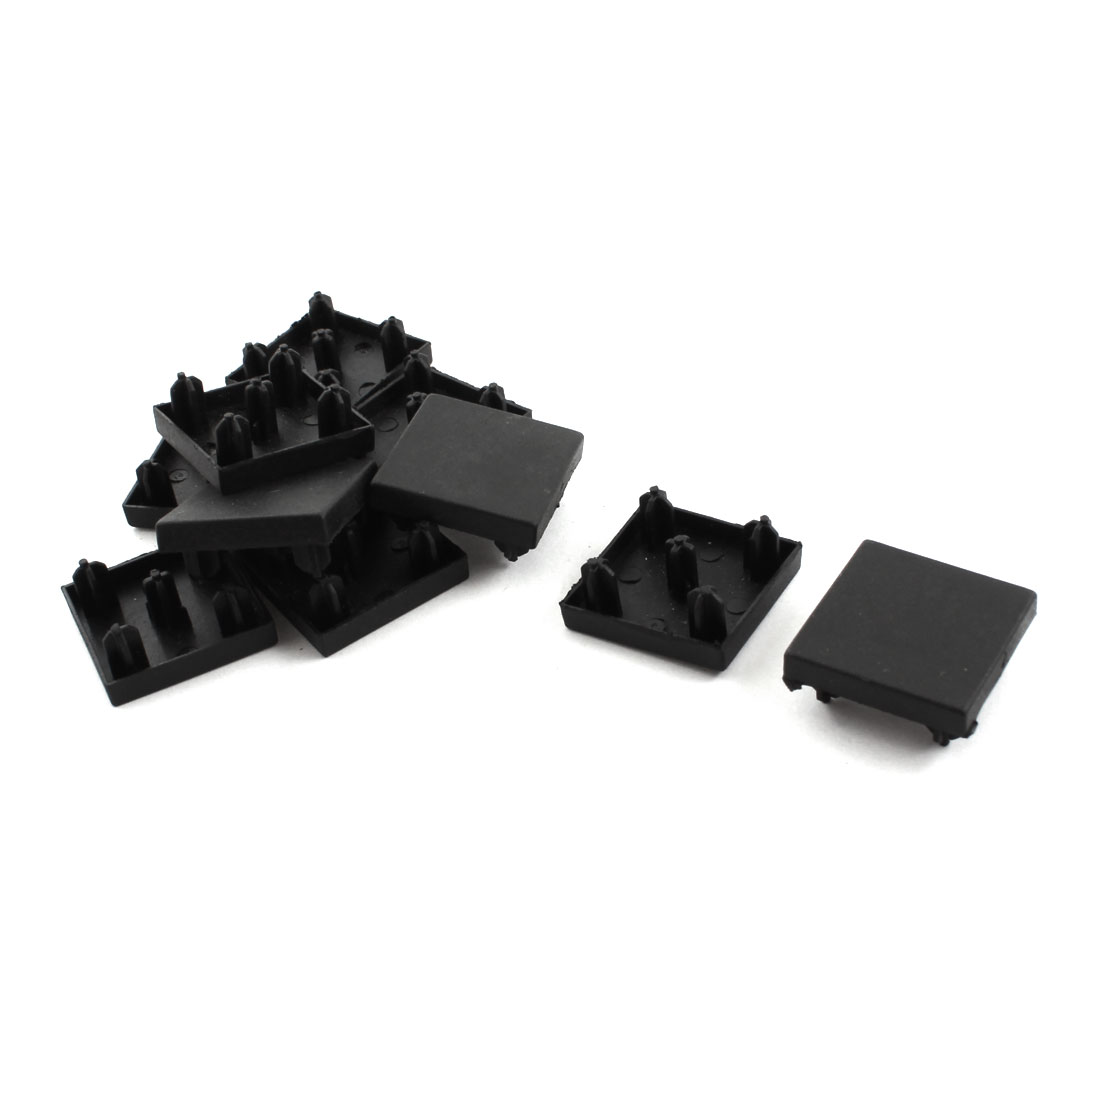 10Pcs Black Square Extrusion End Cap Cover for 30mm x 30mm T-Slot Aluminum Profile